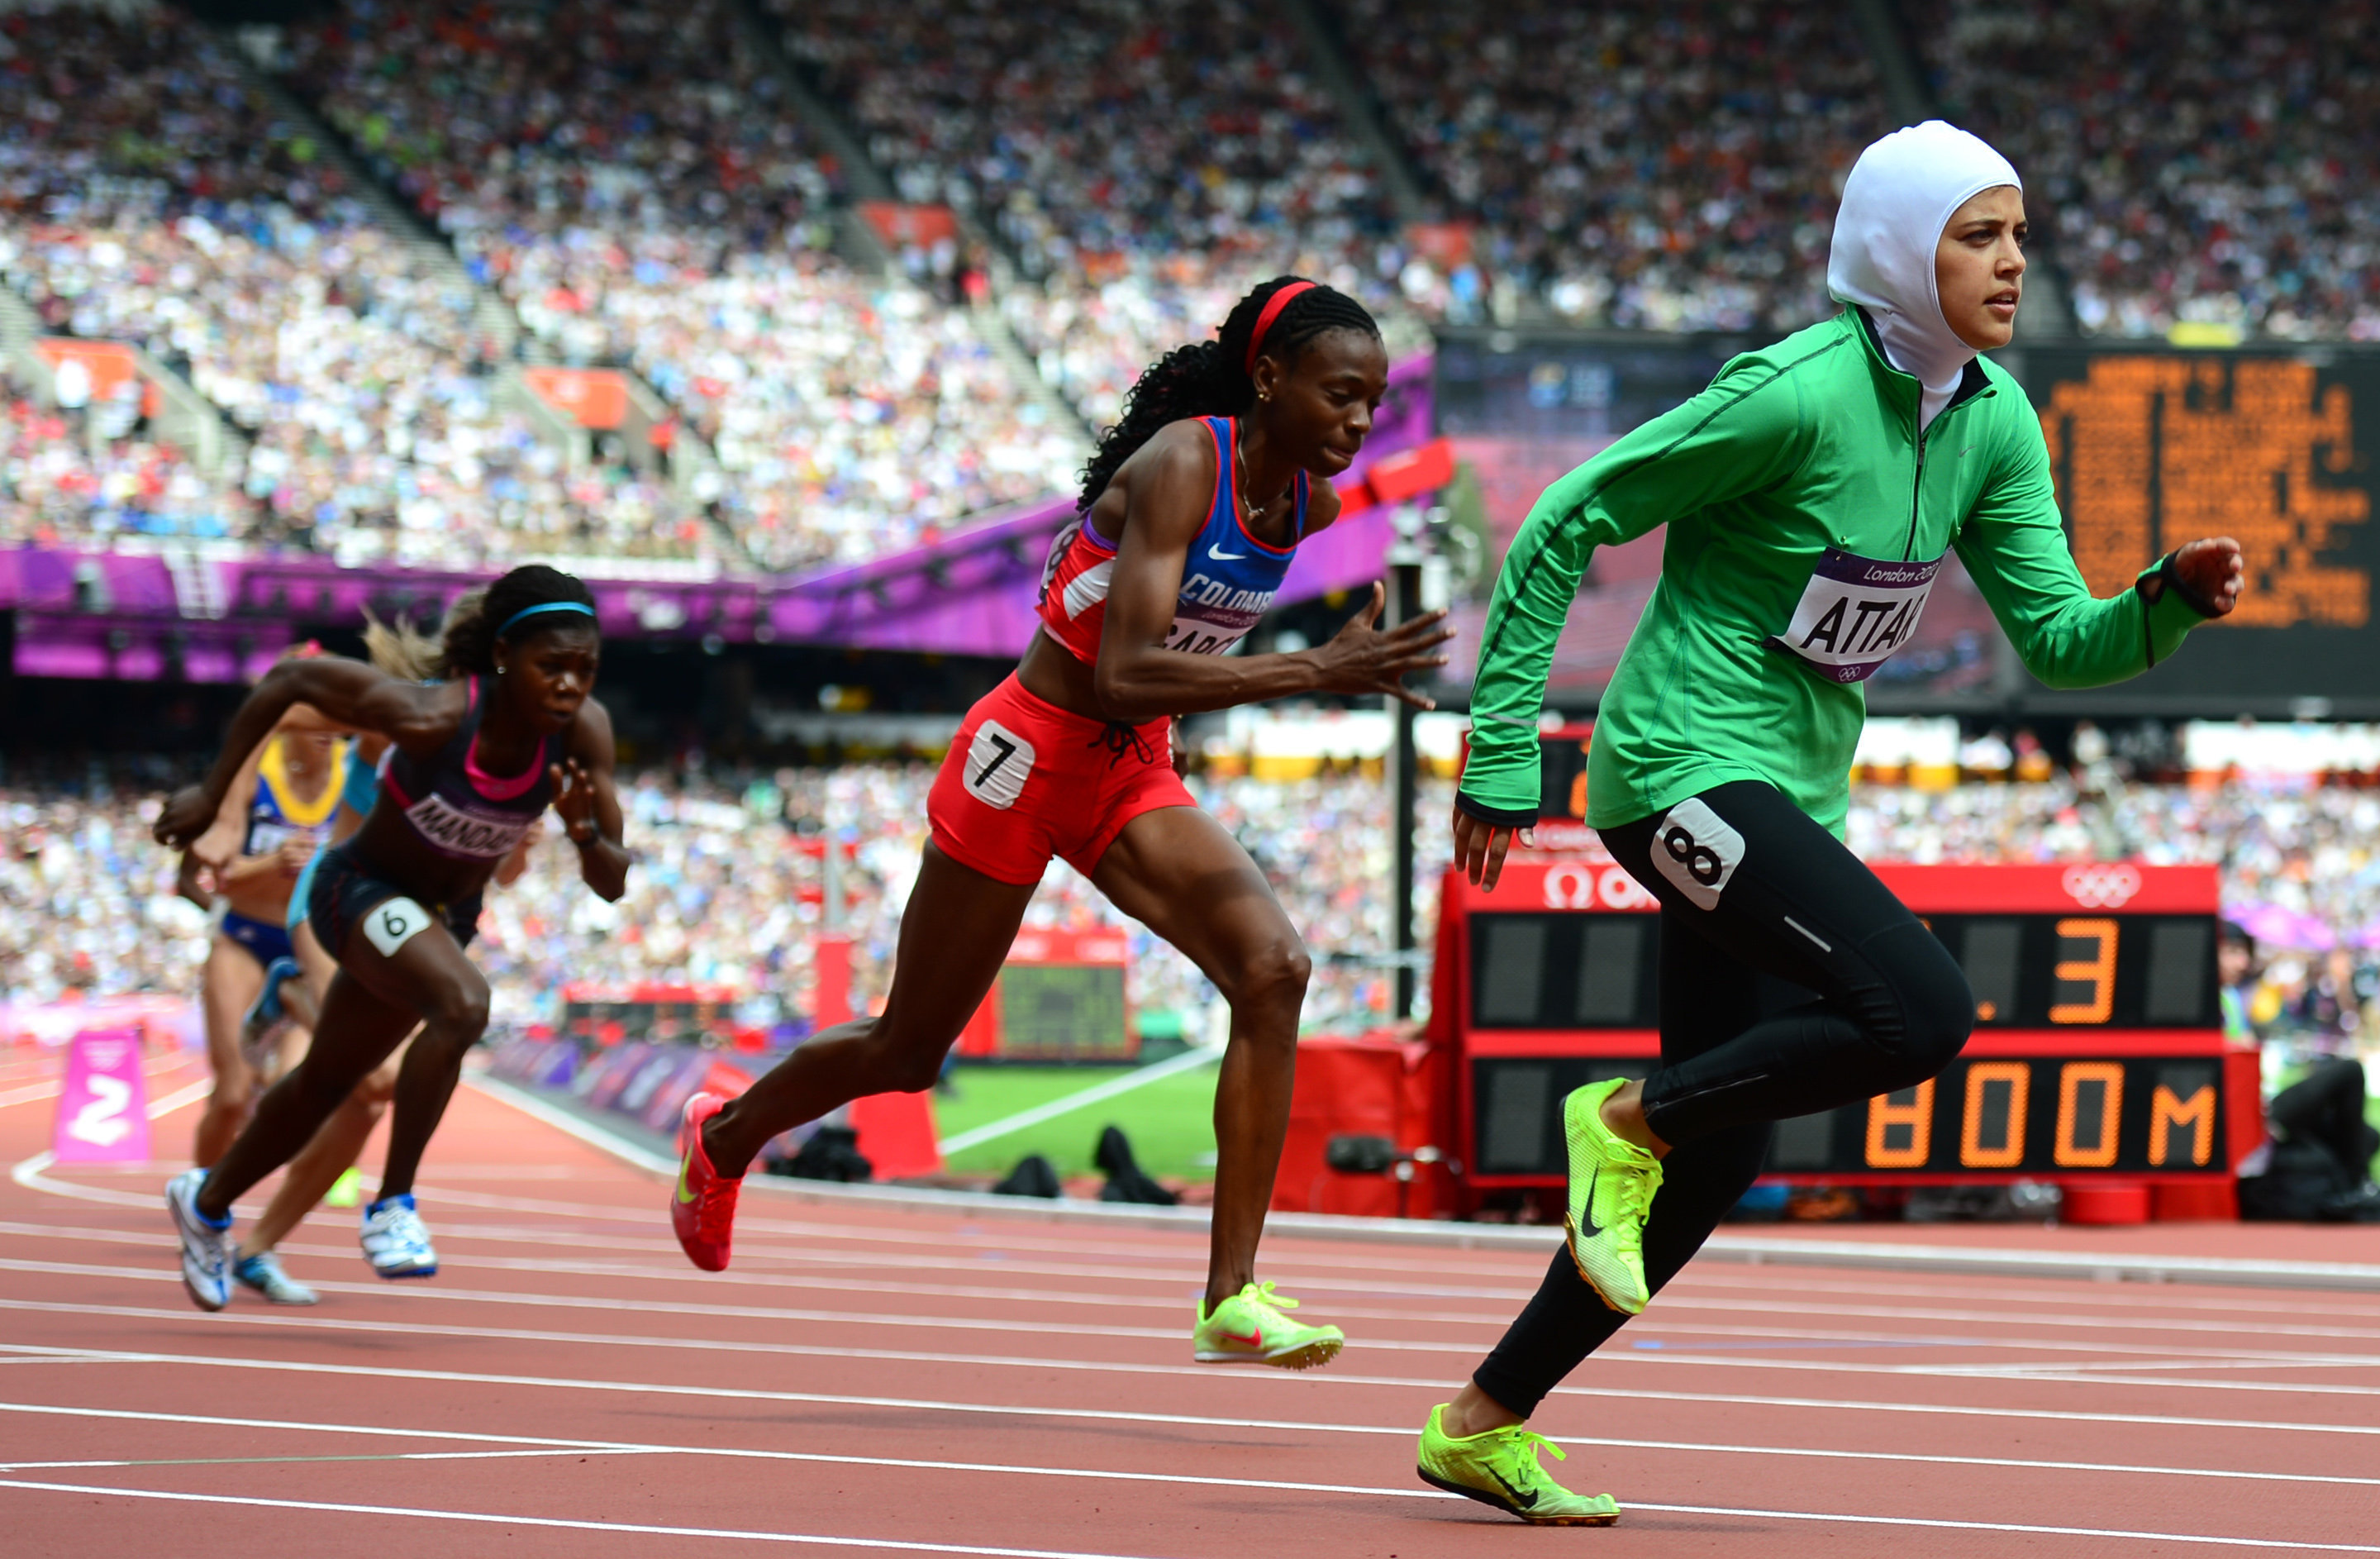 This file photo taken on August 8, 2012 shows (from L) Central Africa Republic's Elisabeth Mandaba, Colombia's Rosibel García and Saudi Arabia's Sarah al-Attar competing in the women's 800m heats at the athletics event of the London 2012 Olympic Games in the capital